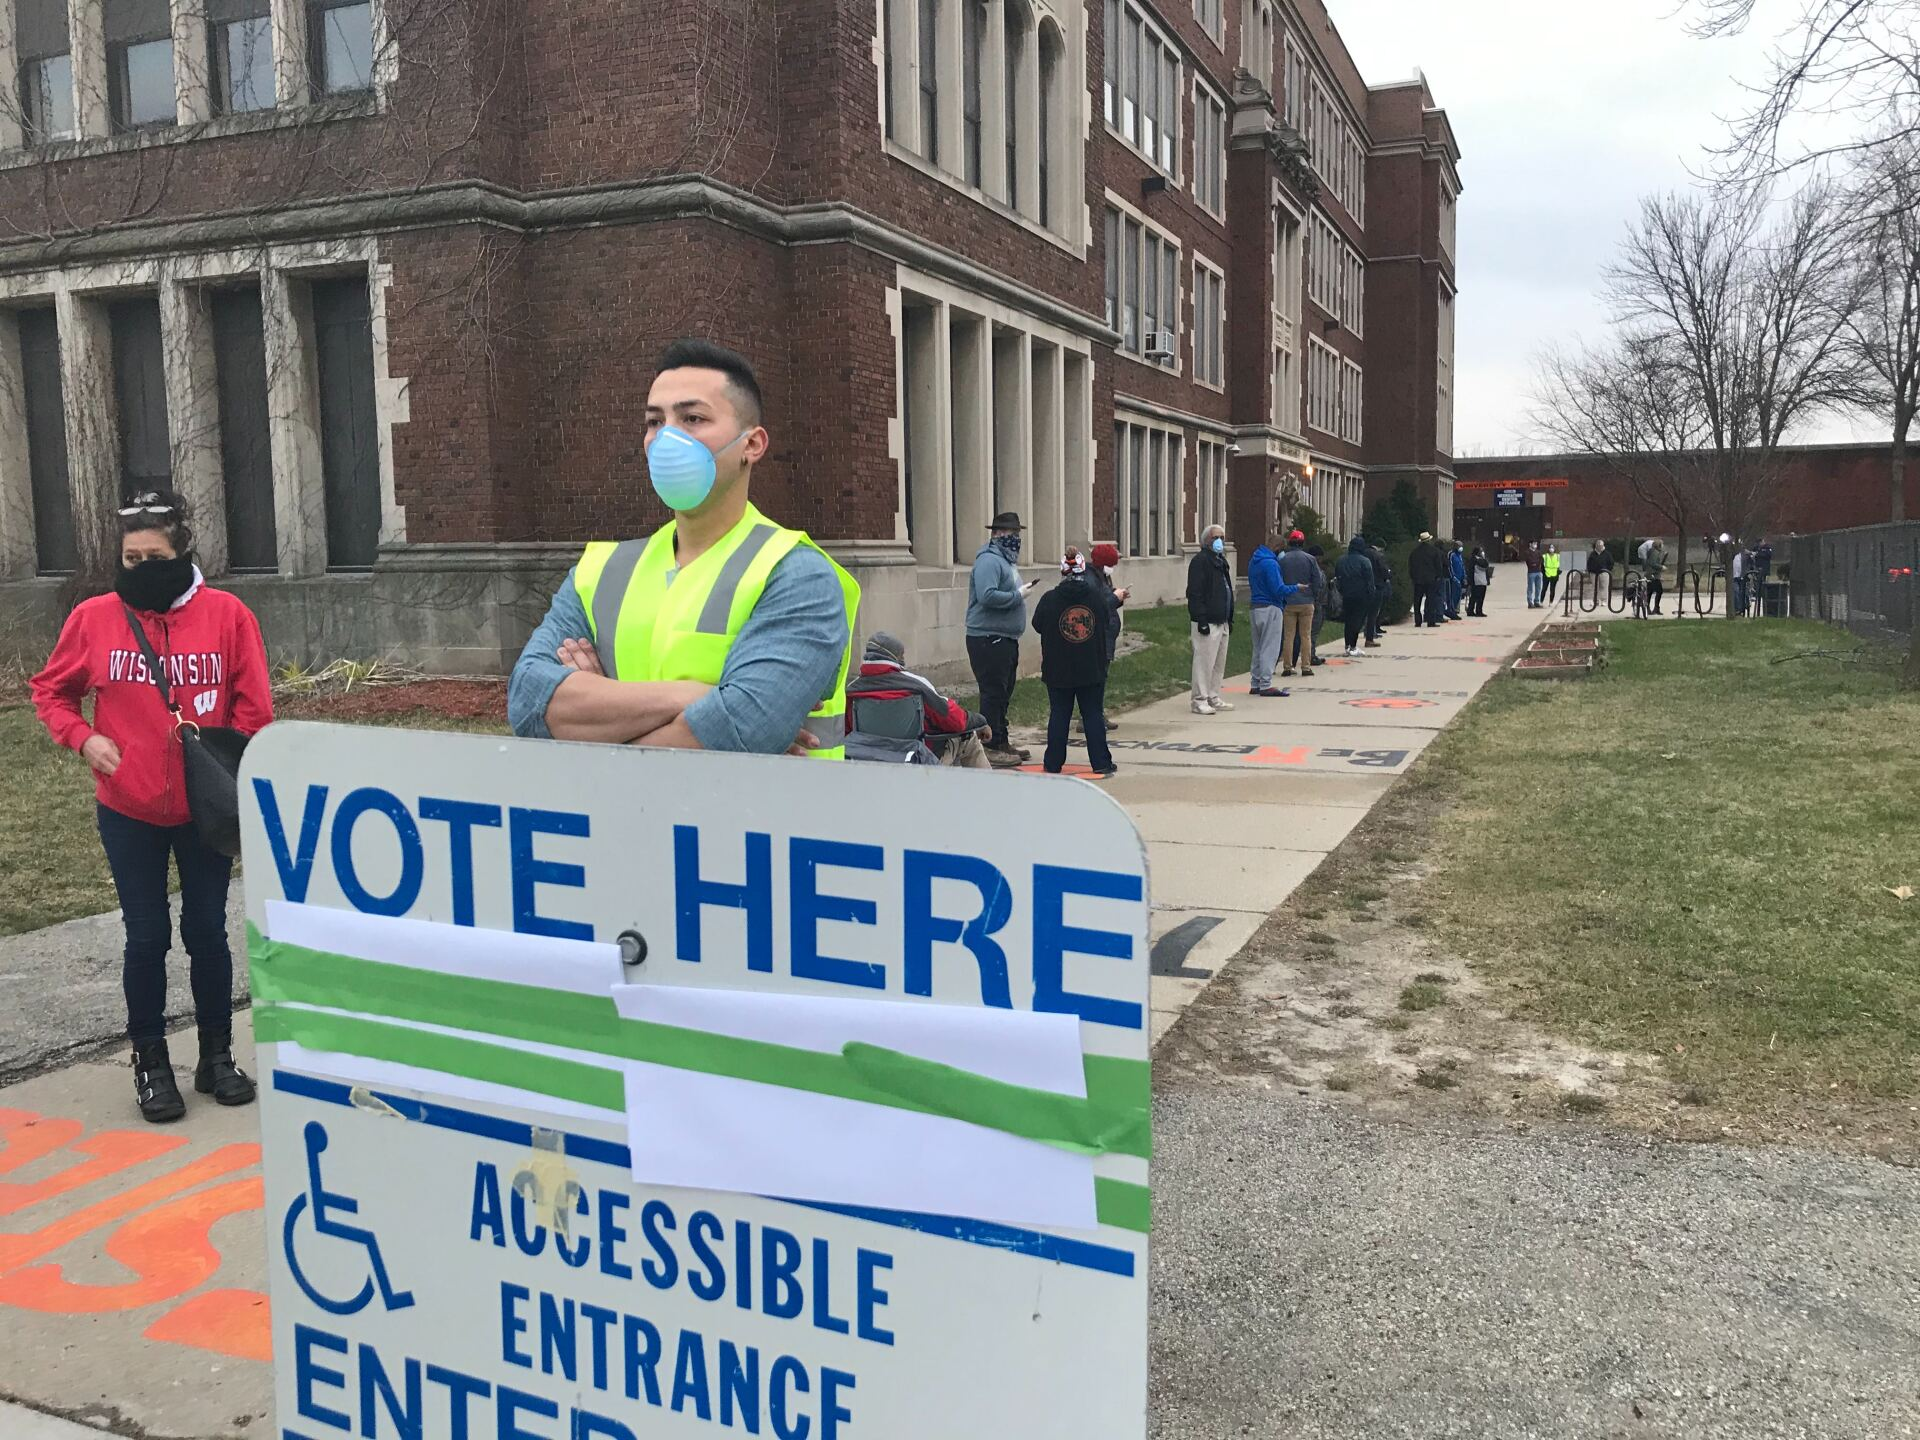 Wisconsin's spring election continues on despite coronavirus pandemic